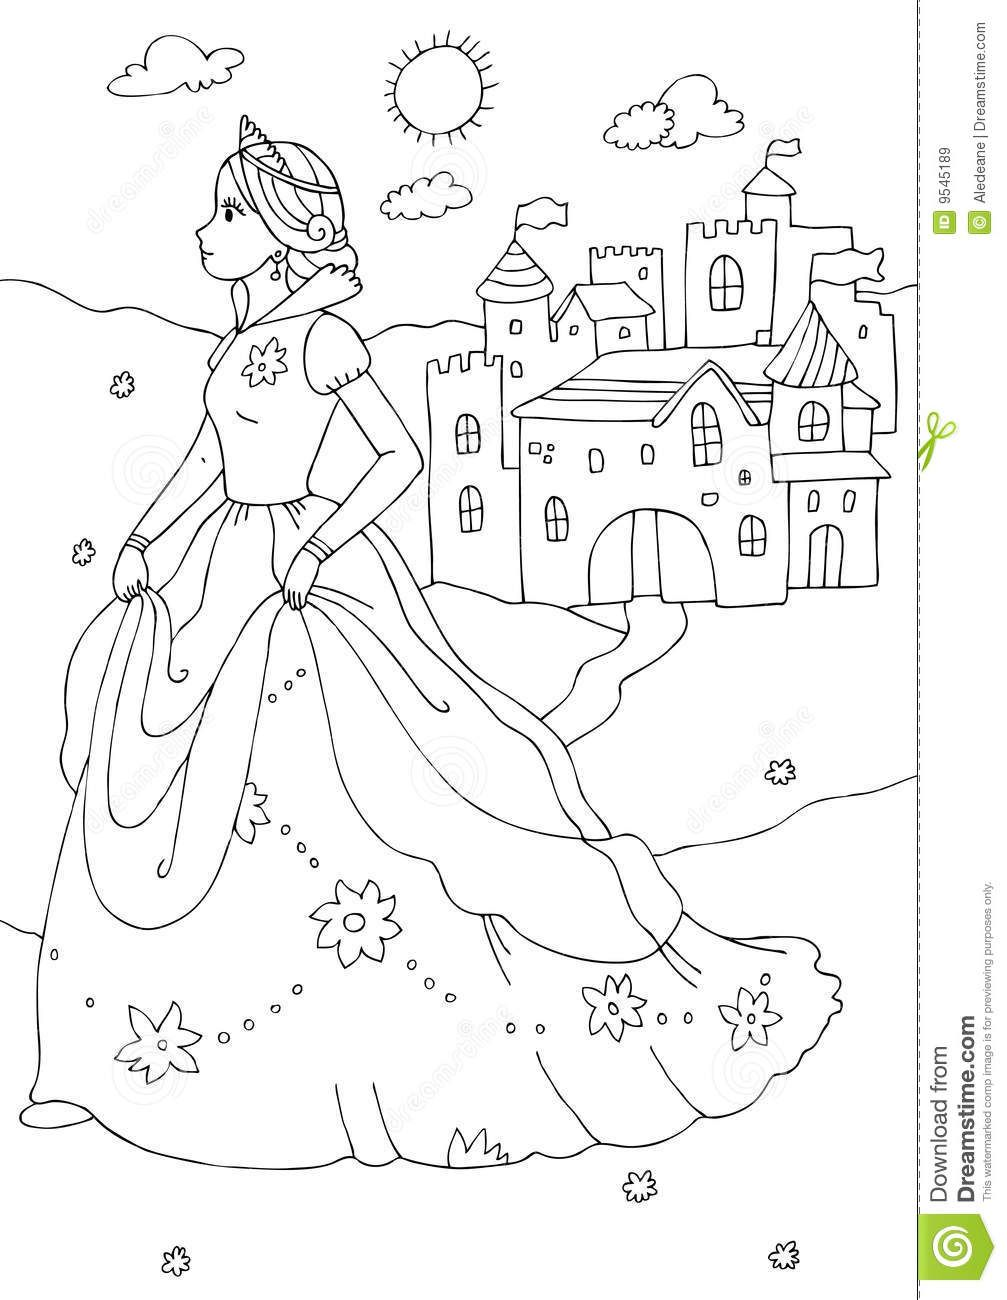 Colouring Pictures Of Castles With Princesses Fargelegging Aktiviteter